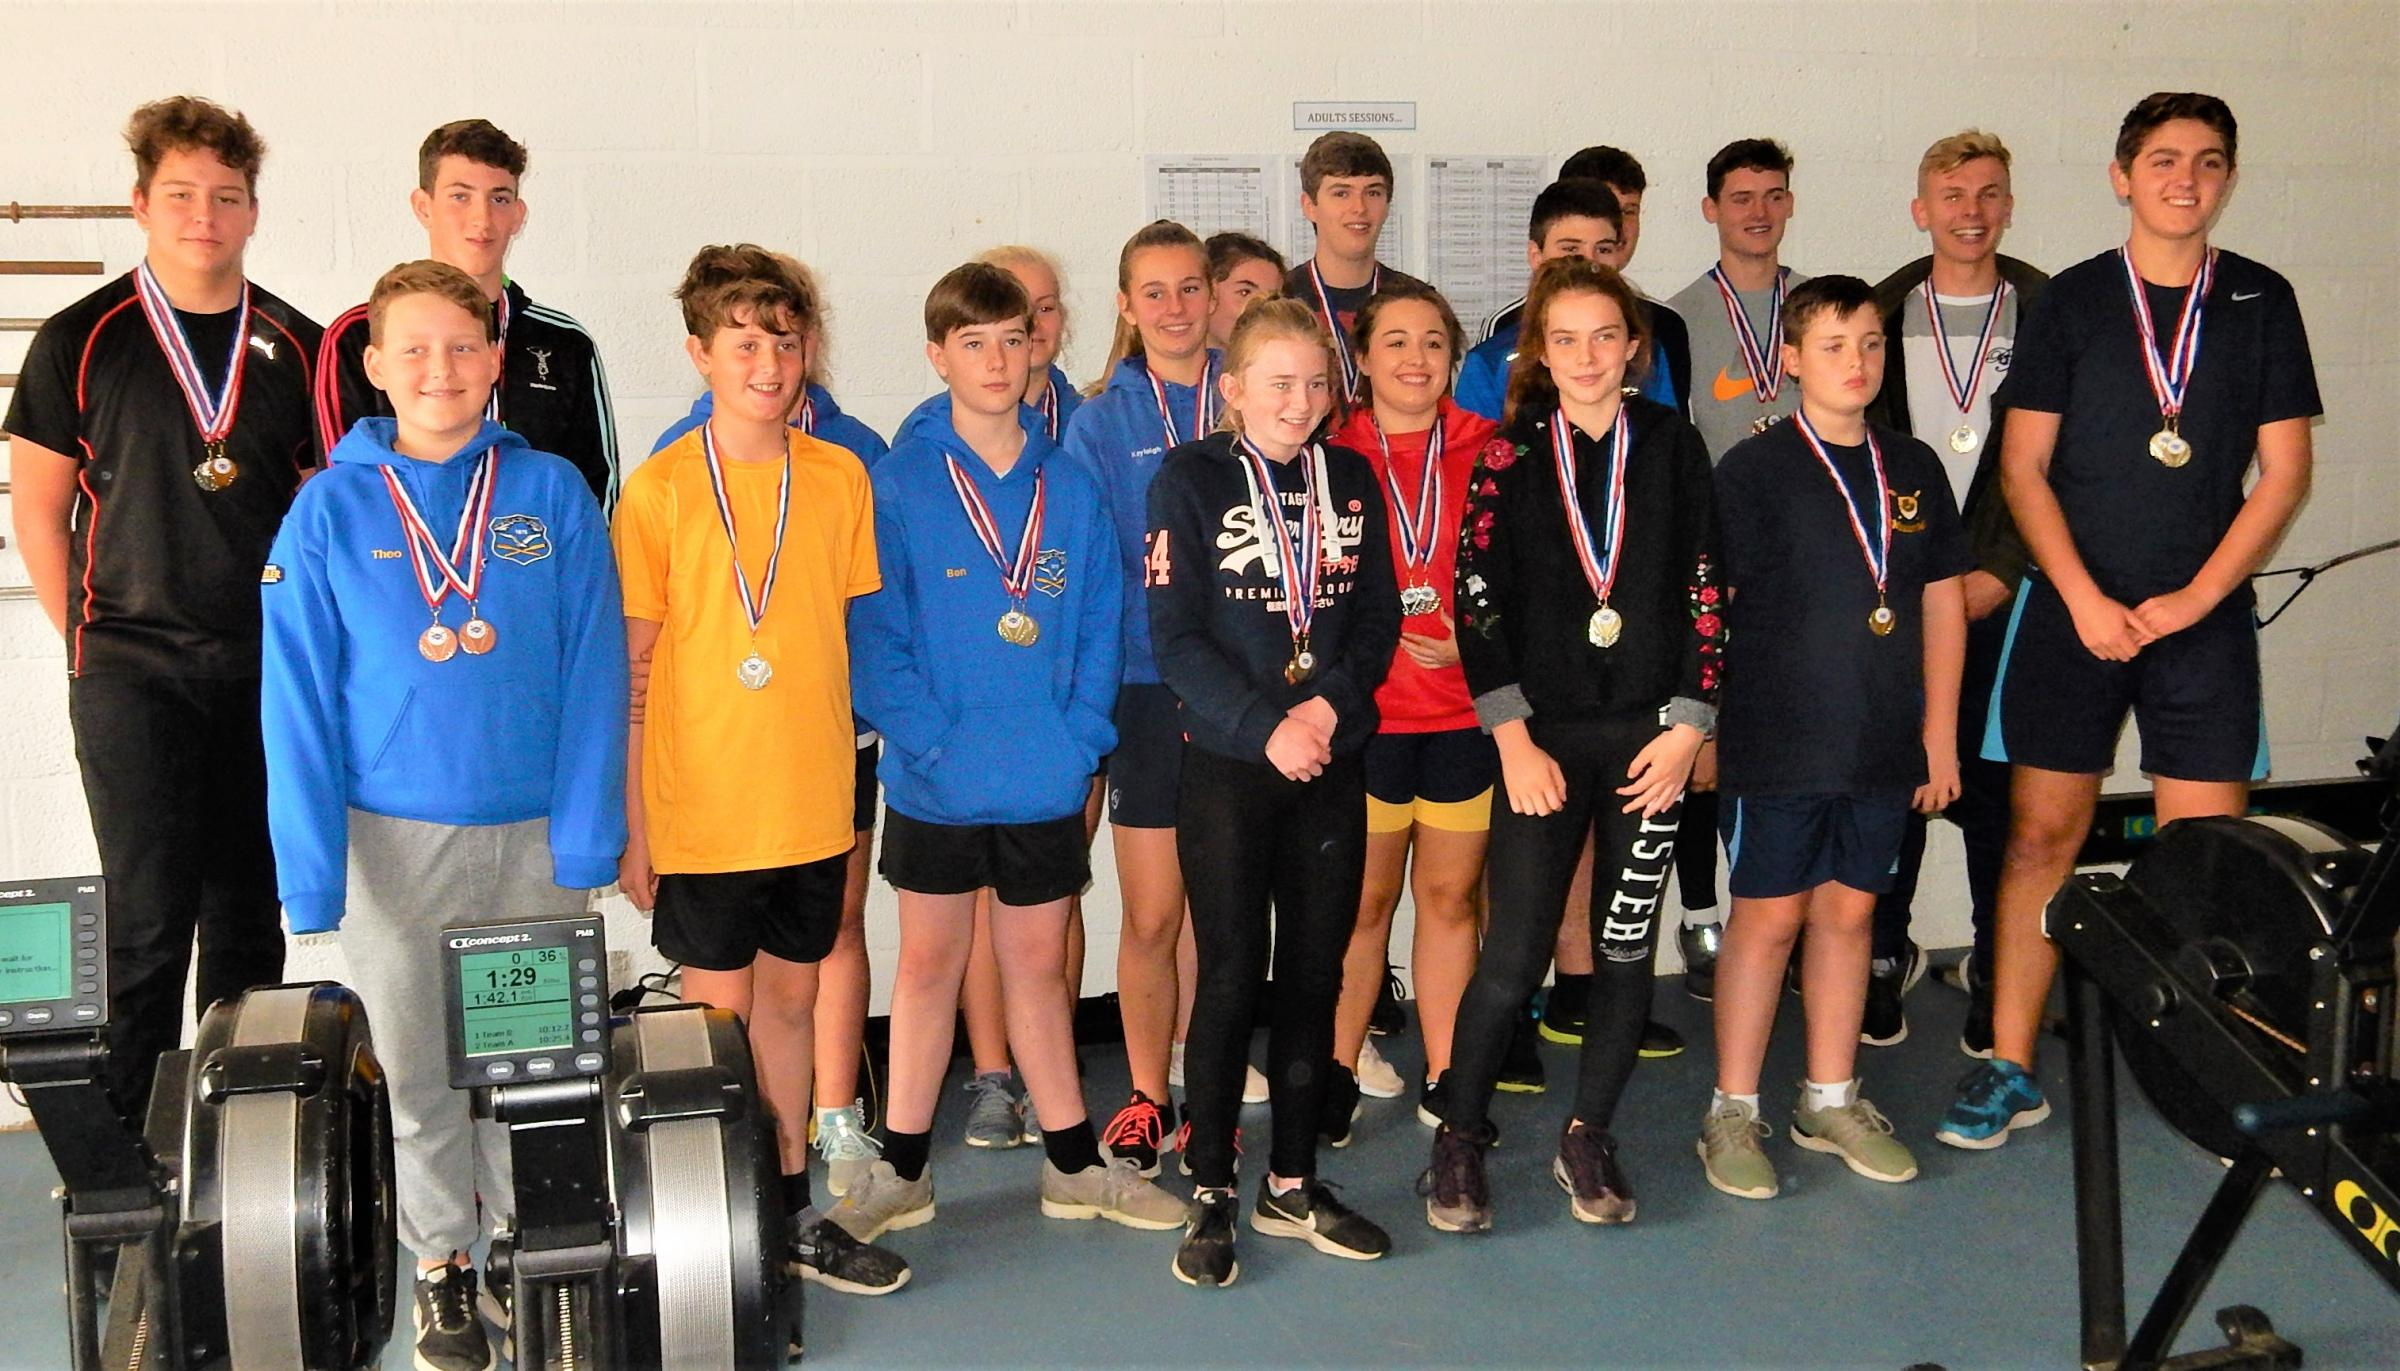 All the competitors who took part in the IW Rowing Forum Junior Indoor Rowing Competition, held at Shanklin Sandown Rowing Club on Sunday.